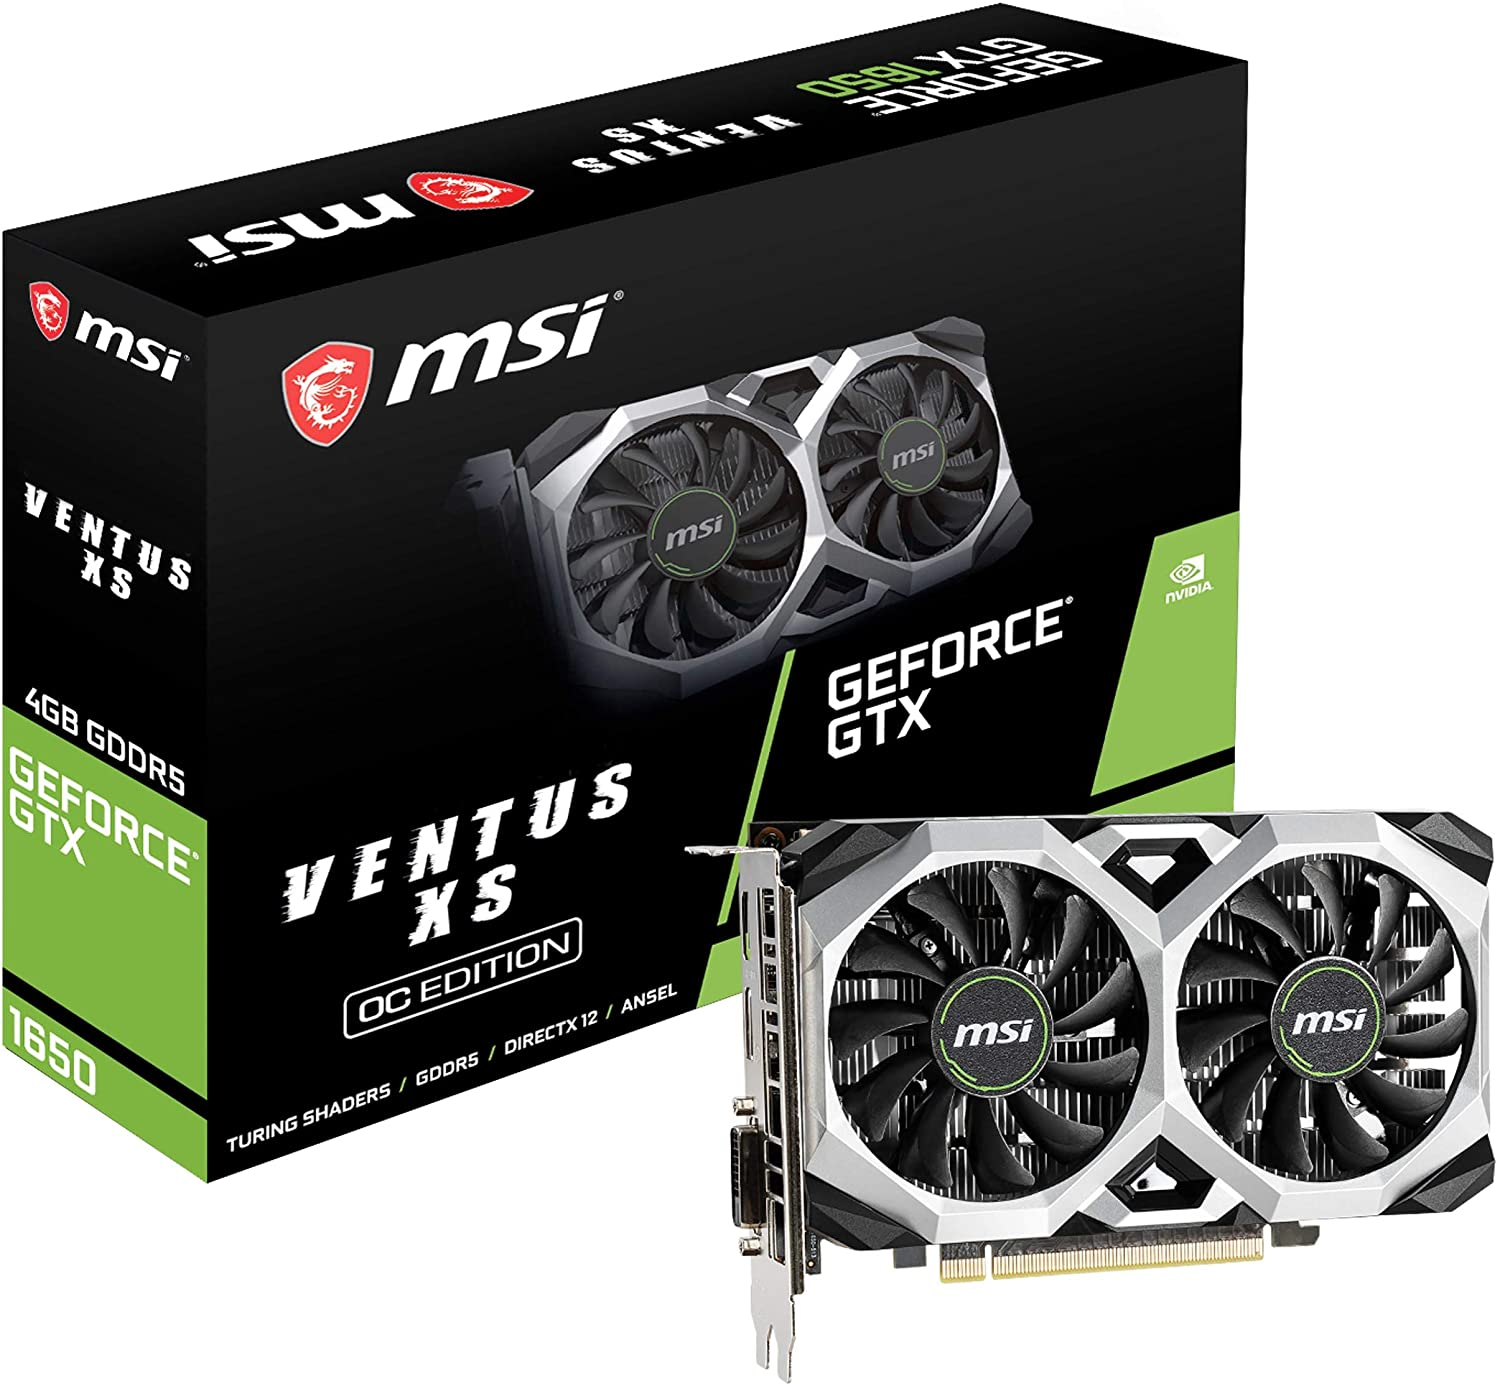 MSI G1650VXS4C Gaming GeForce GTX 1650 128-Bit HDMI/DP 4GB GDRR5 HDCP Support DirectX 12 VR Ready OC Graphics Card (GTX 1650 Ventus XS 4G OC)